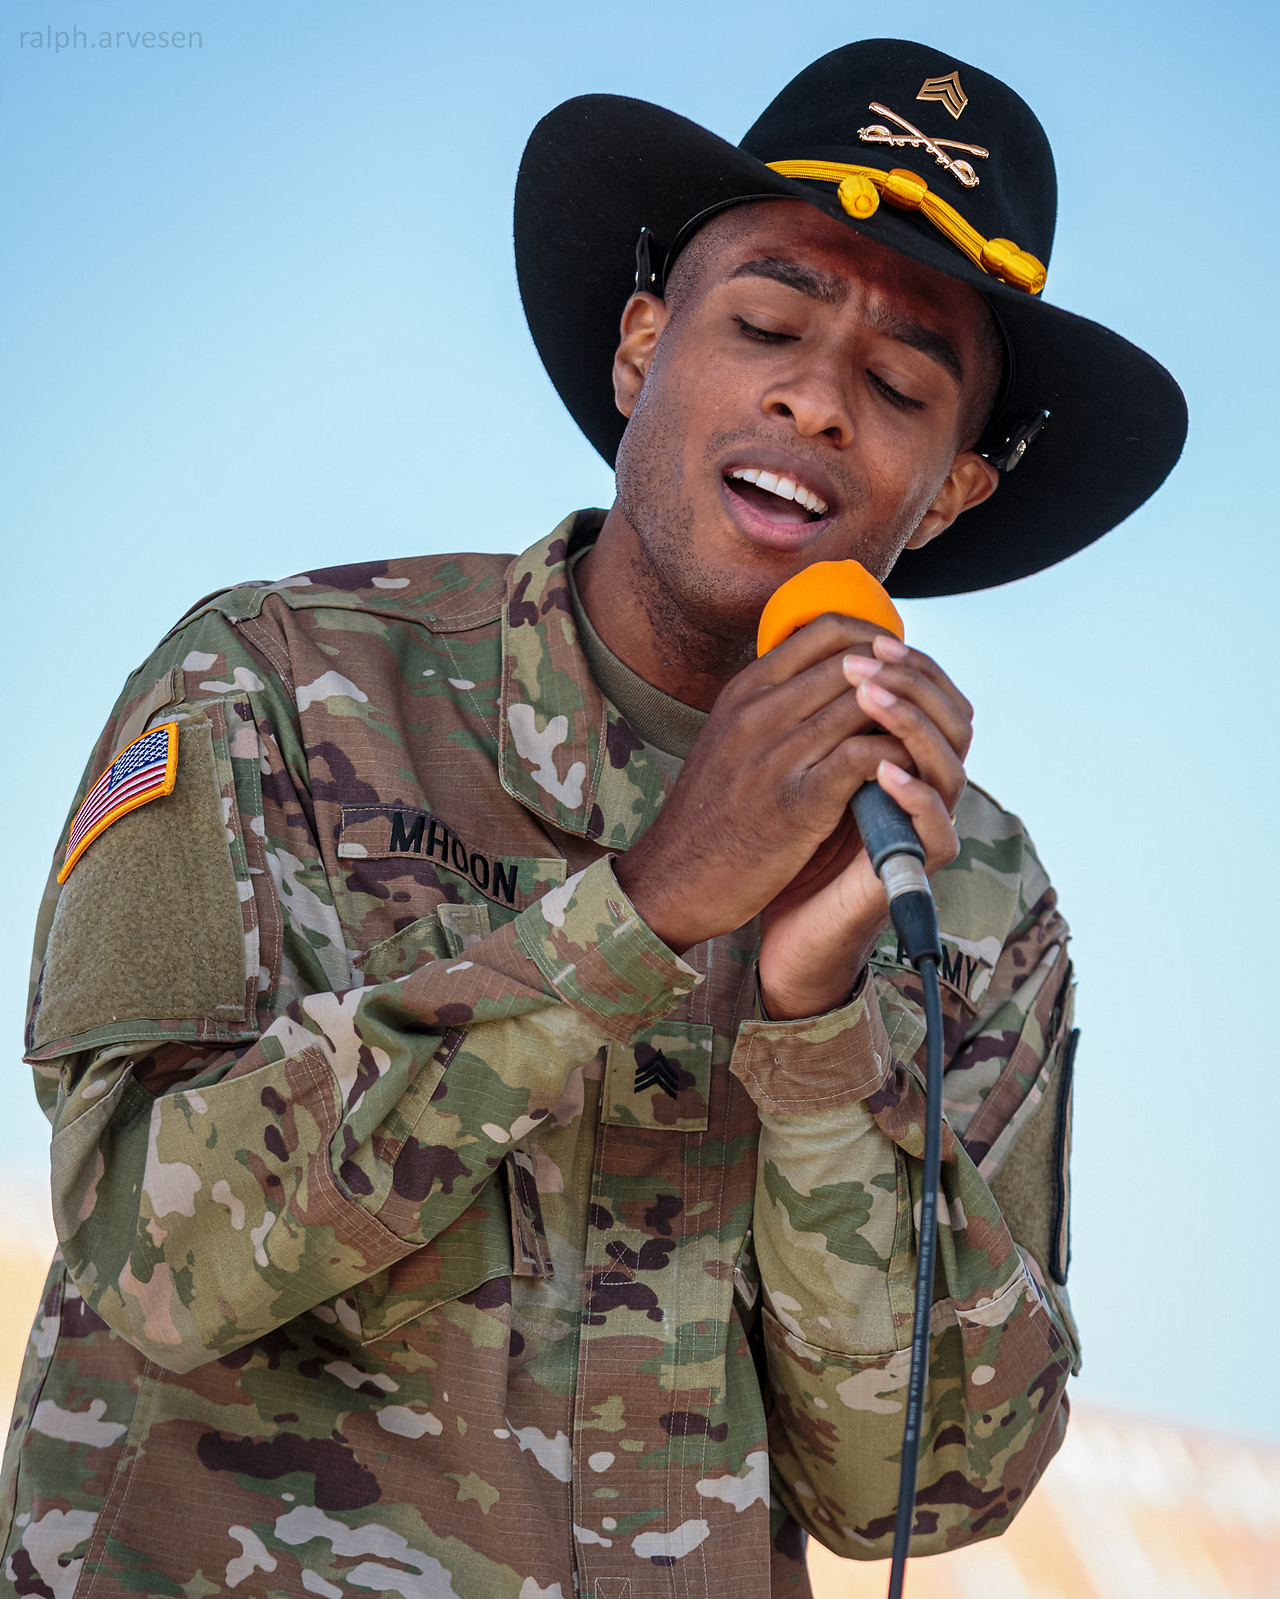 1st Cavalry Division Rock Band | Texas Review | Ralph Arvesen